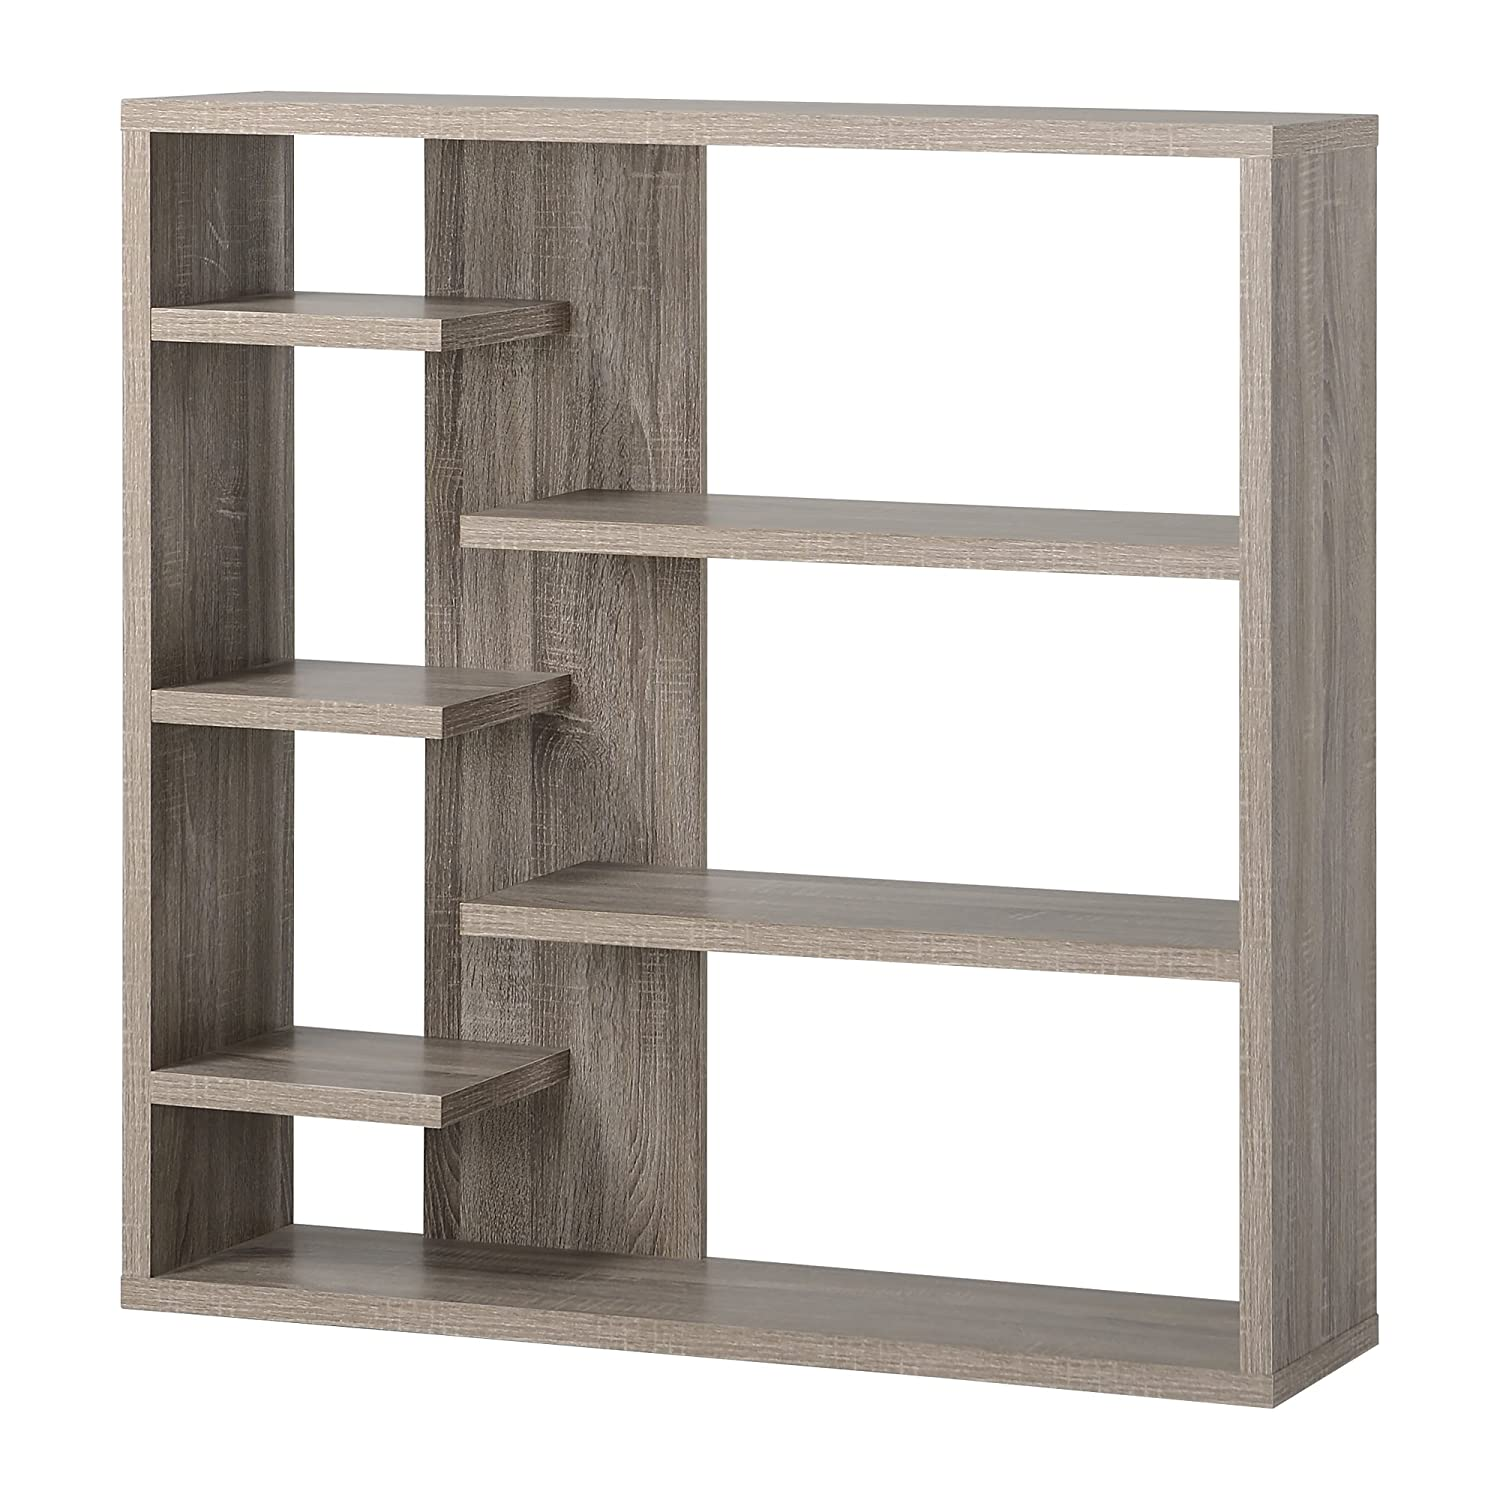 Homestar Furniture 6 Shelf Storage Bookcase In Reclaimed Wood: Amazon.ca:  Home & Kitchen